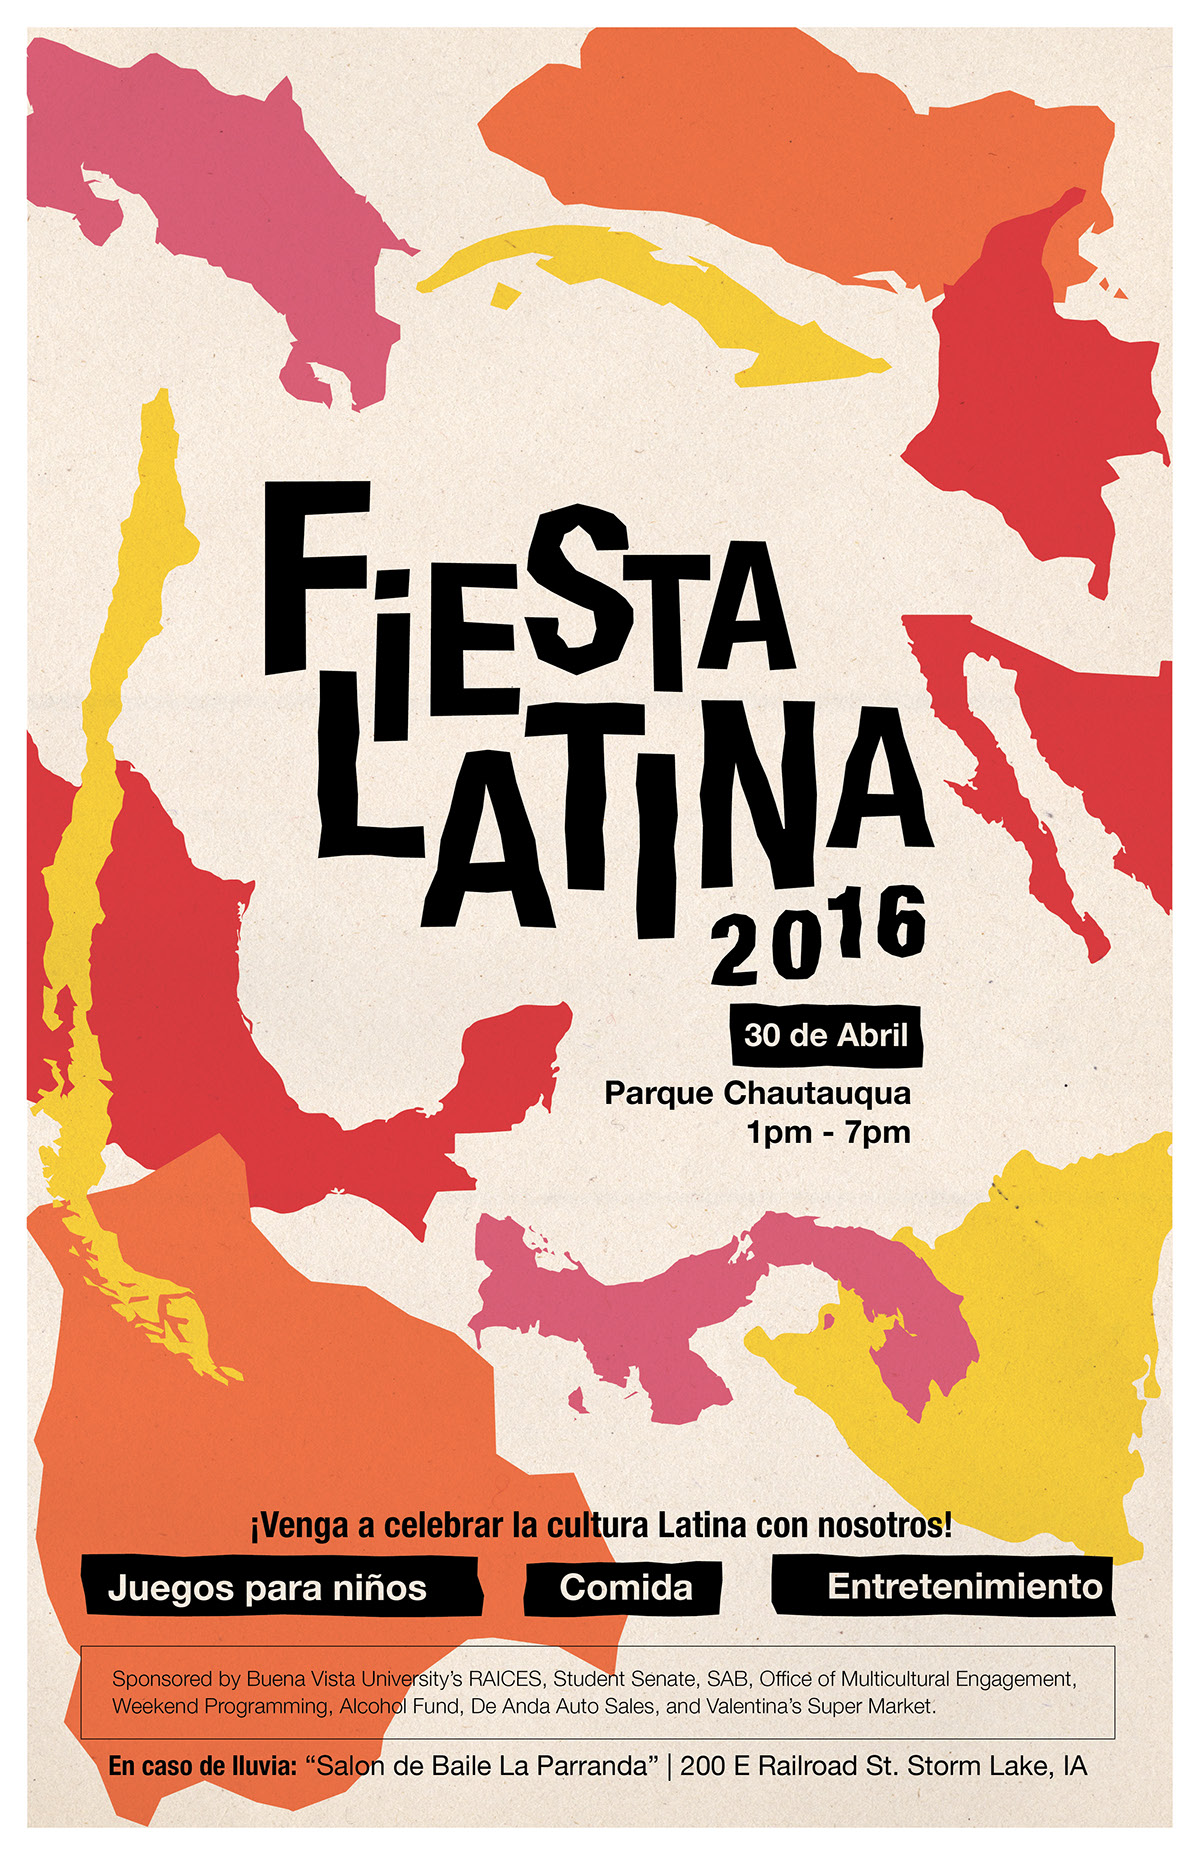 Event Poster Fiesta Latina 2016 on Behance